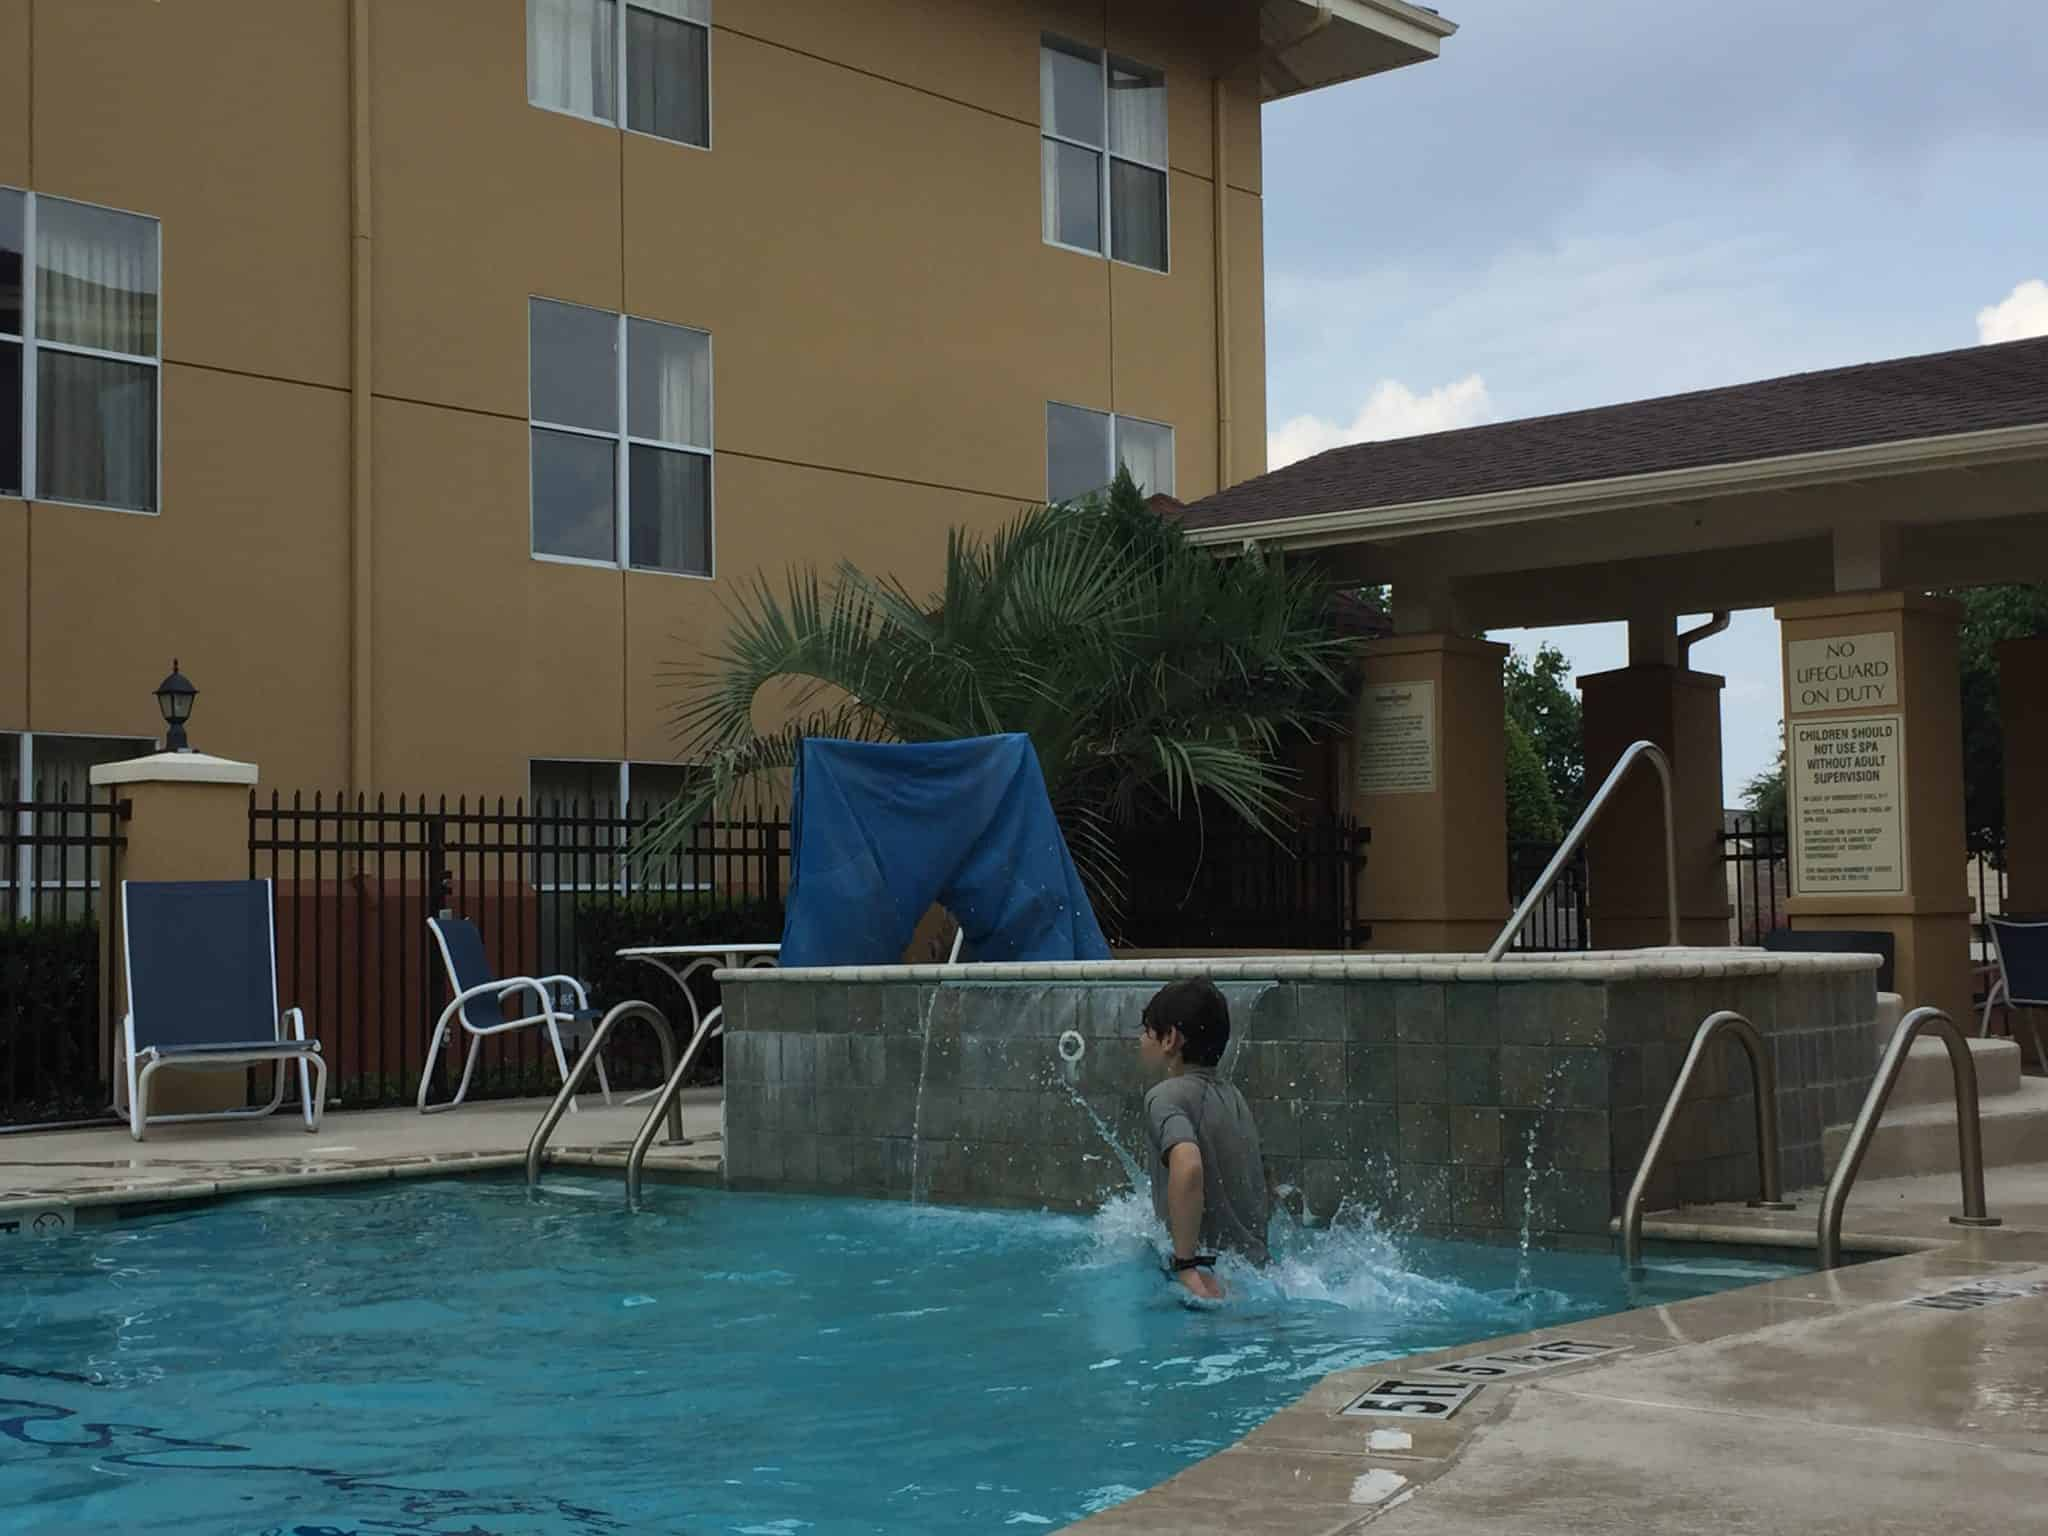 Extended Stay America for Family Friendly and Pet Friendly Travel kids in the pool